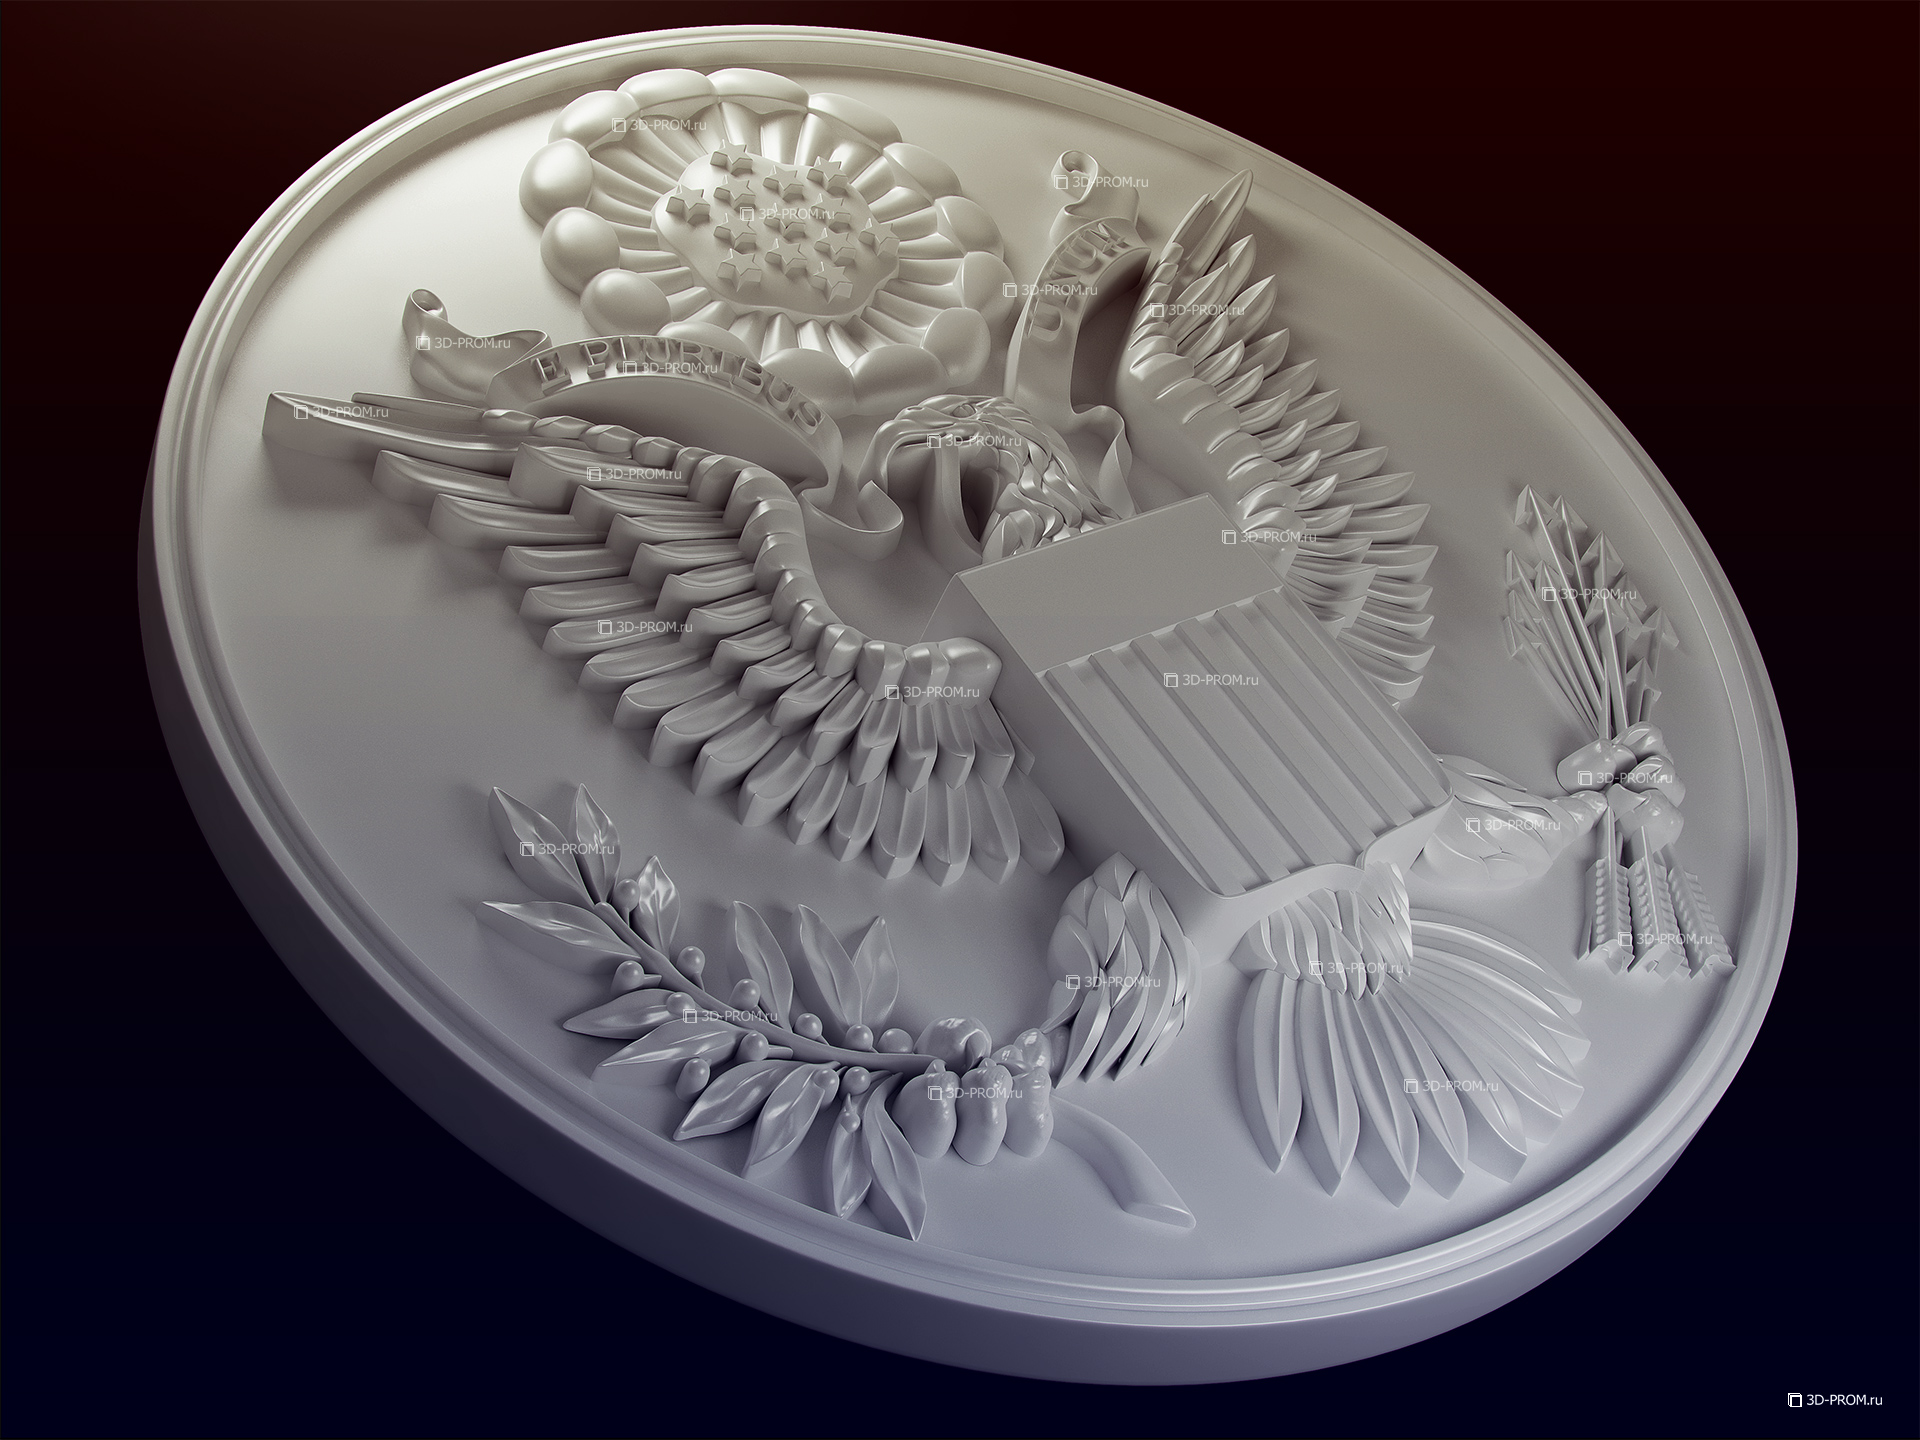 Great Seal of the USA, 3d model